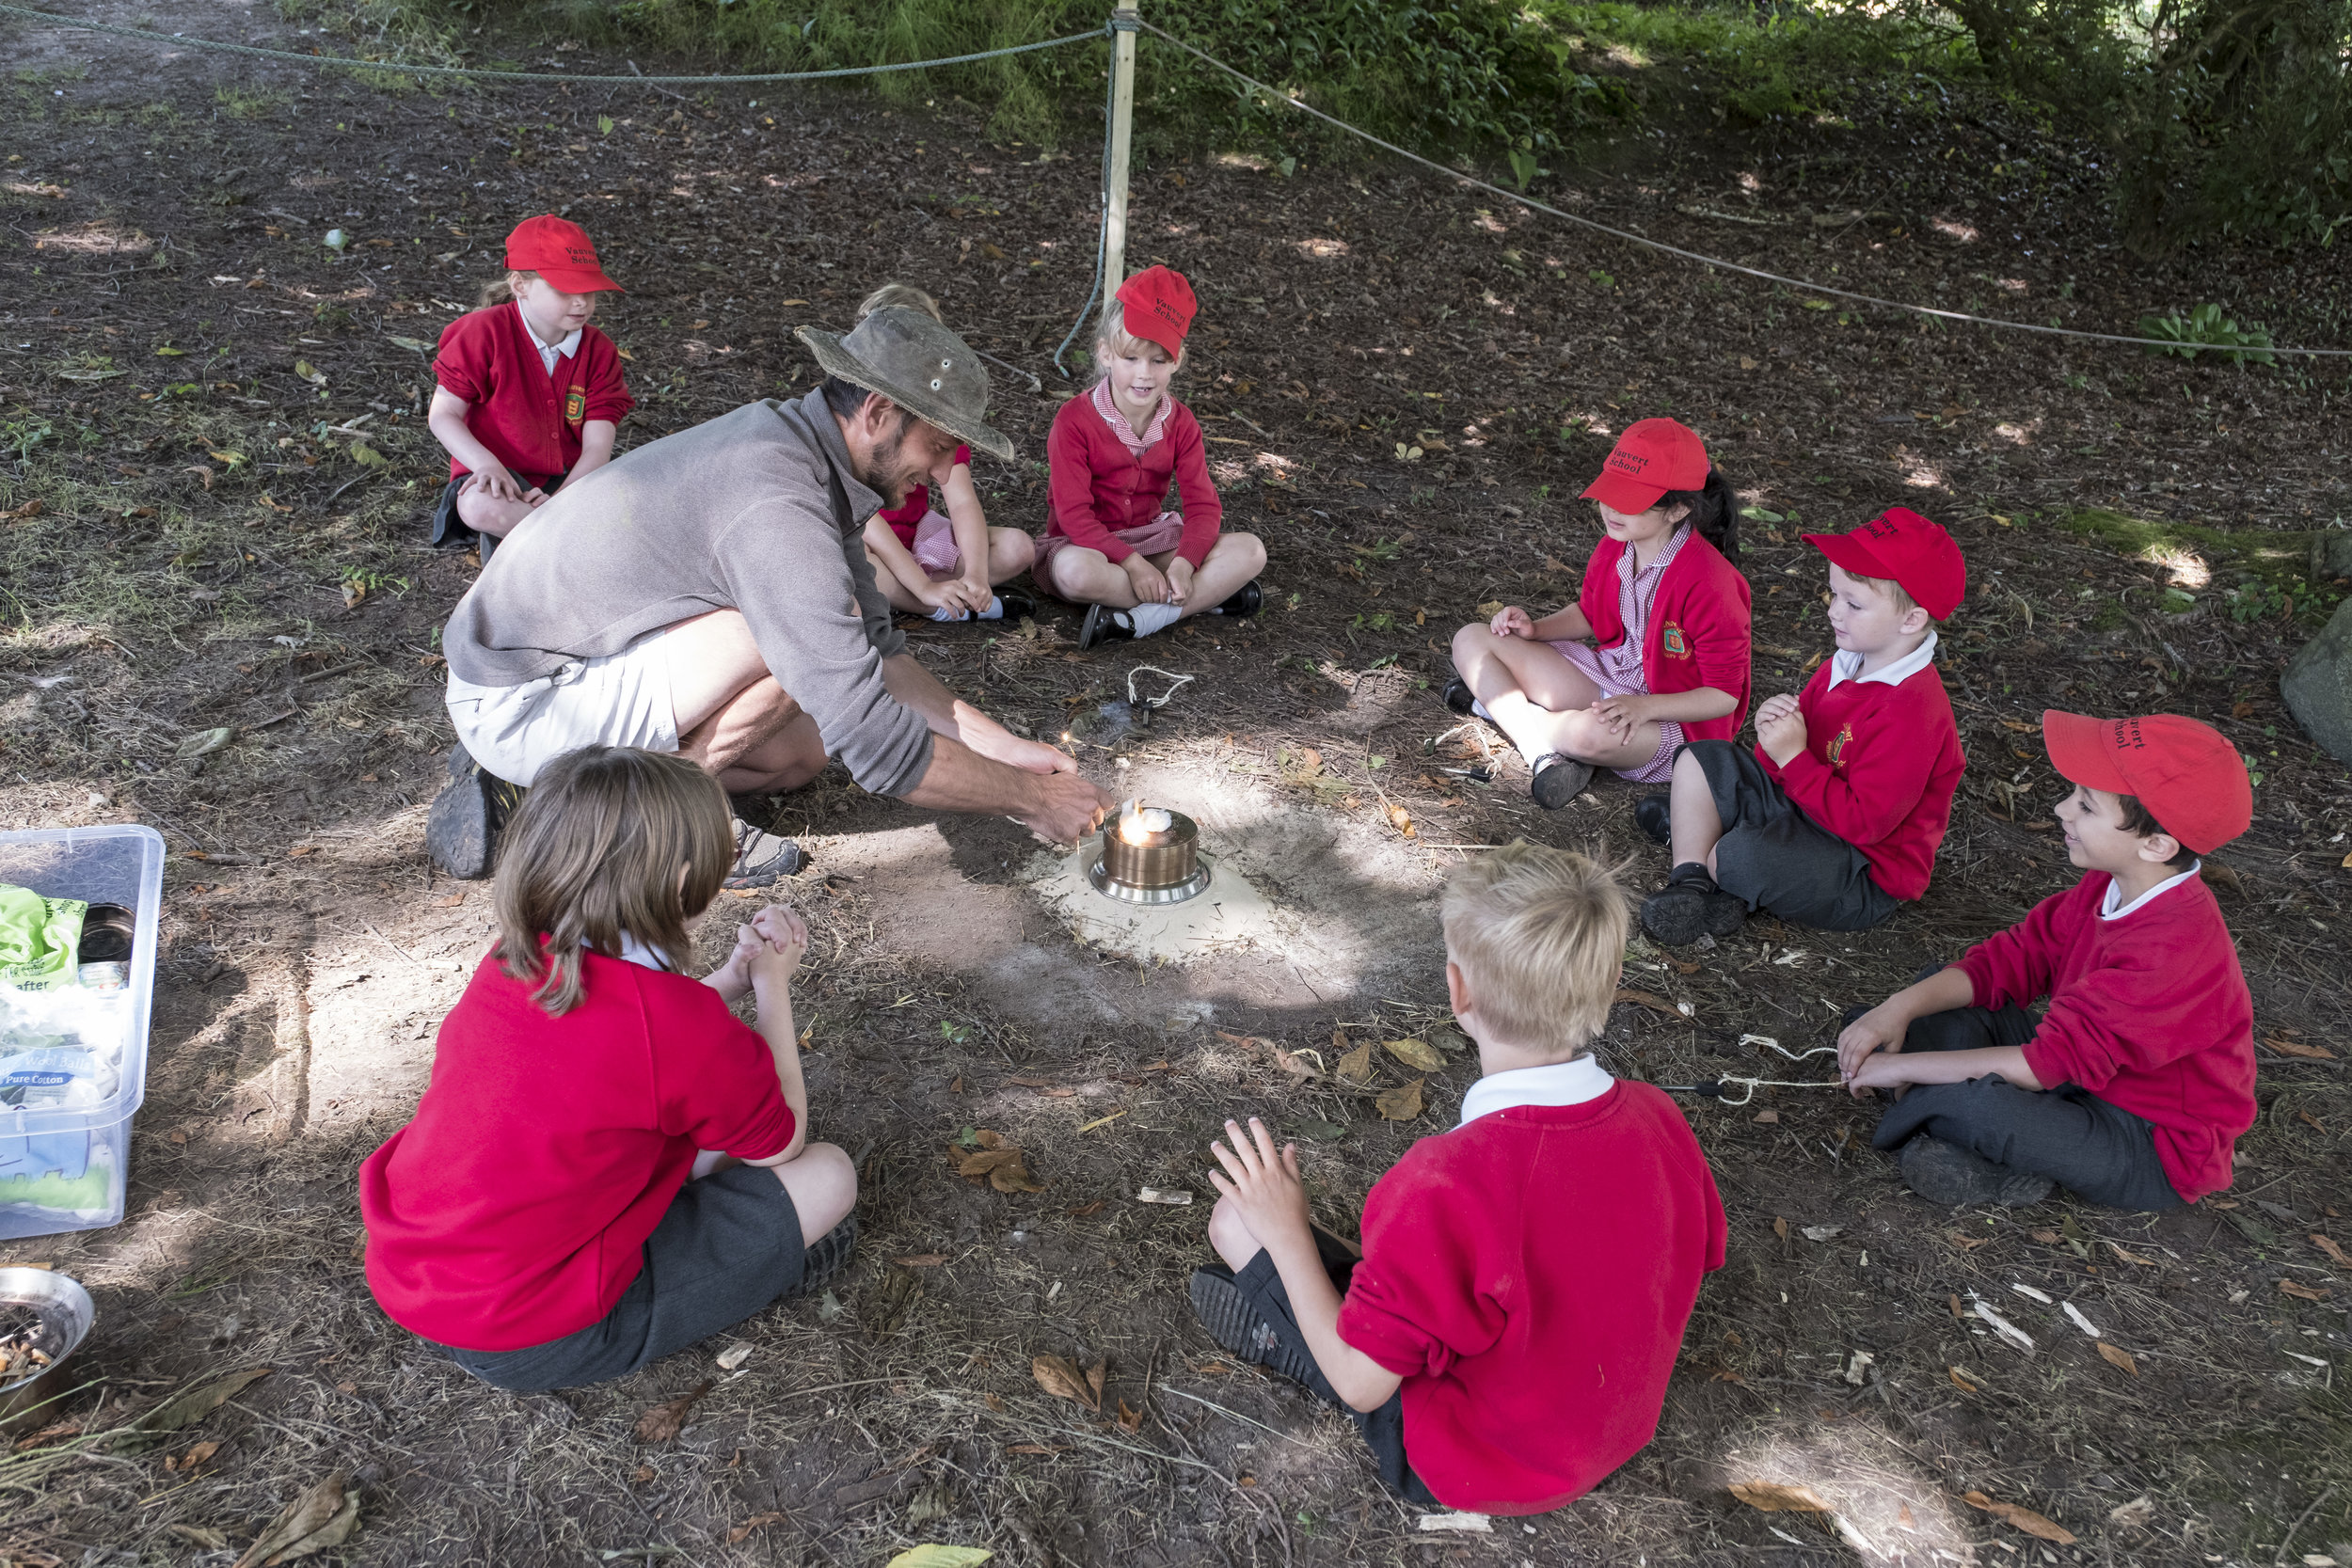 Children being taught primitive bushcraft skills